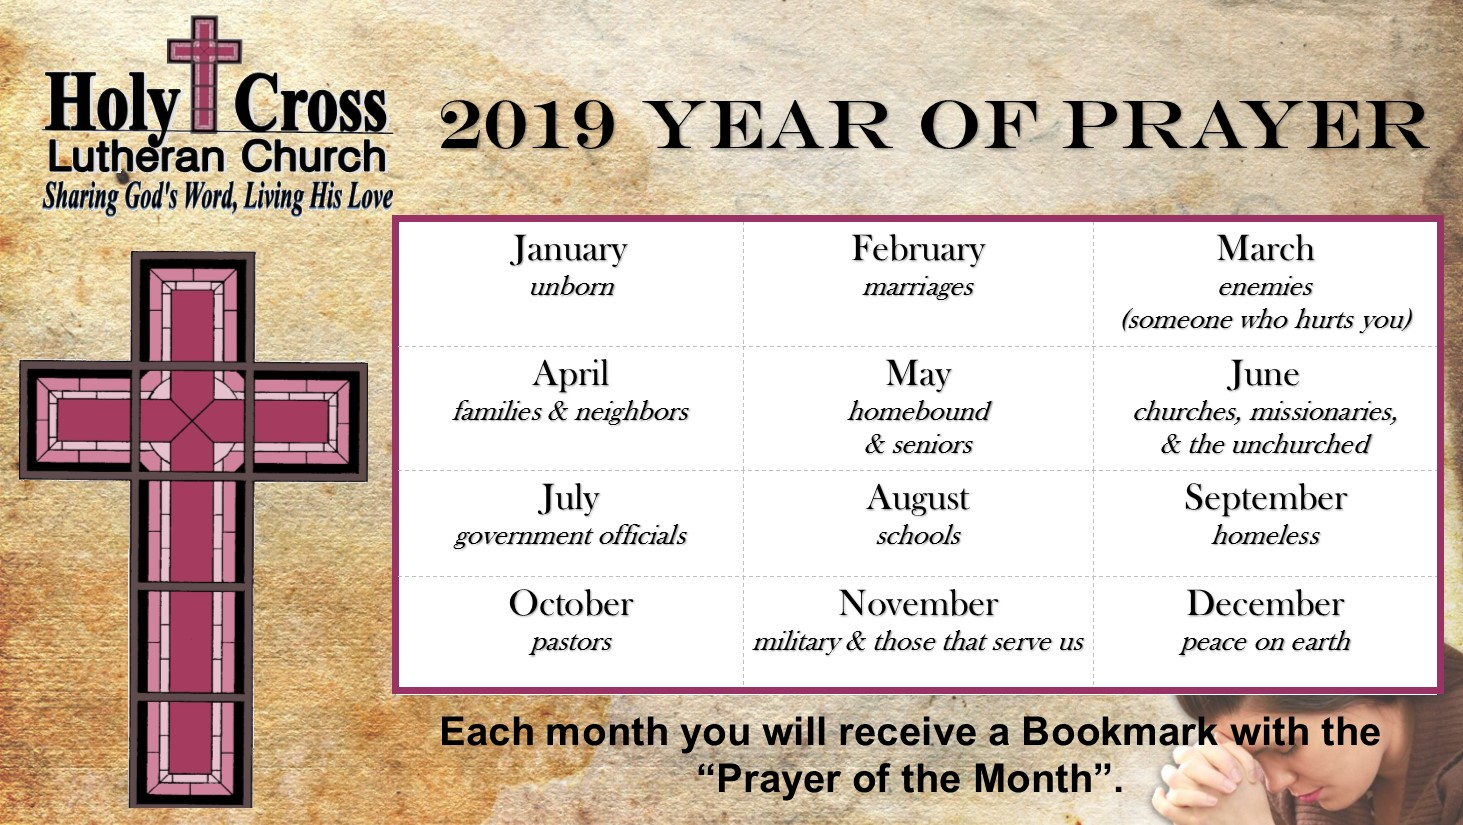 2019 Year of Prayer